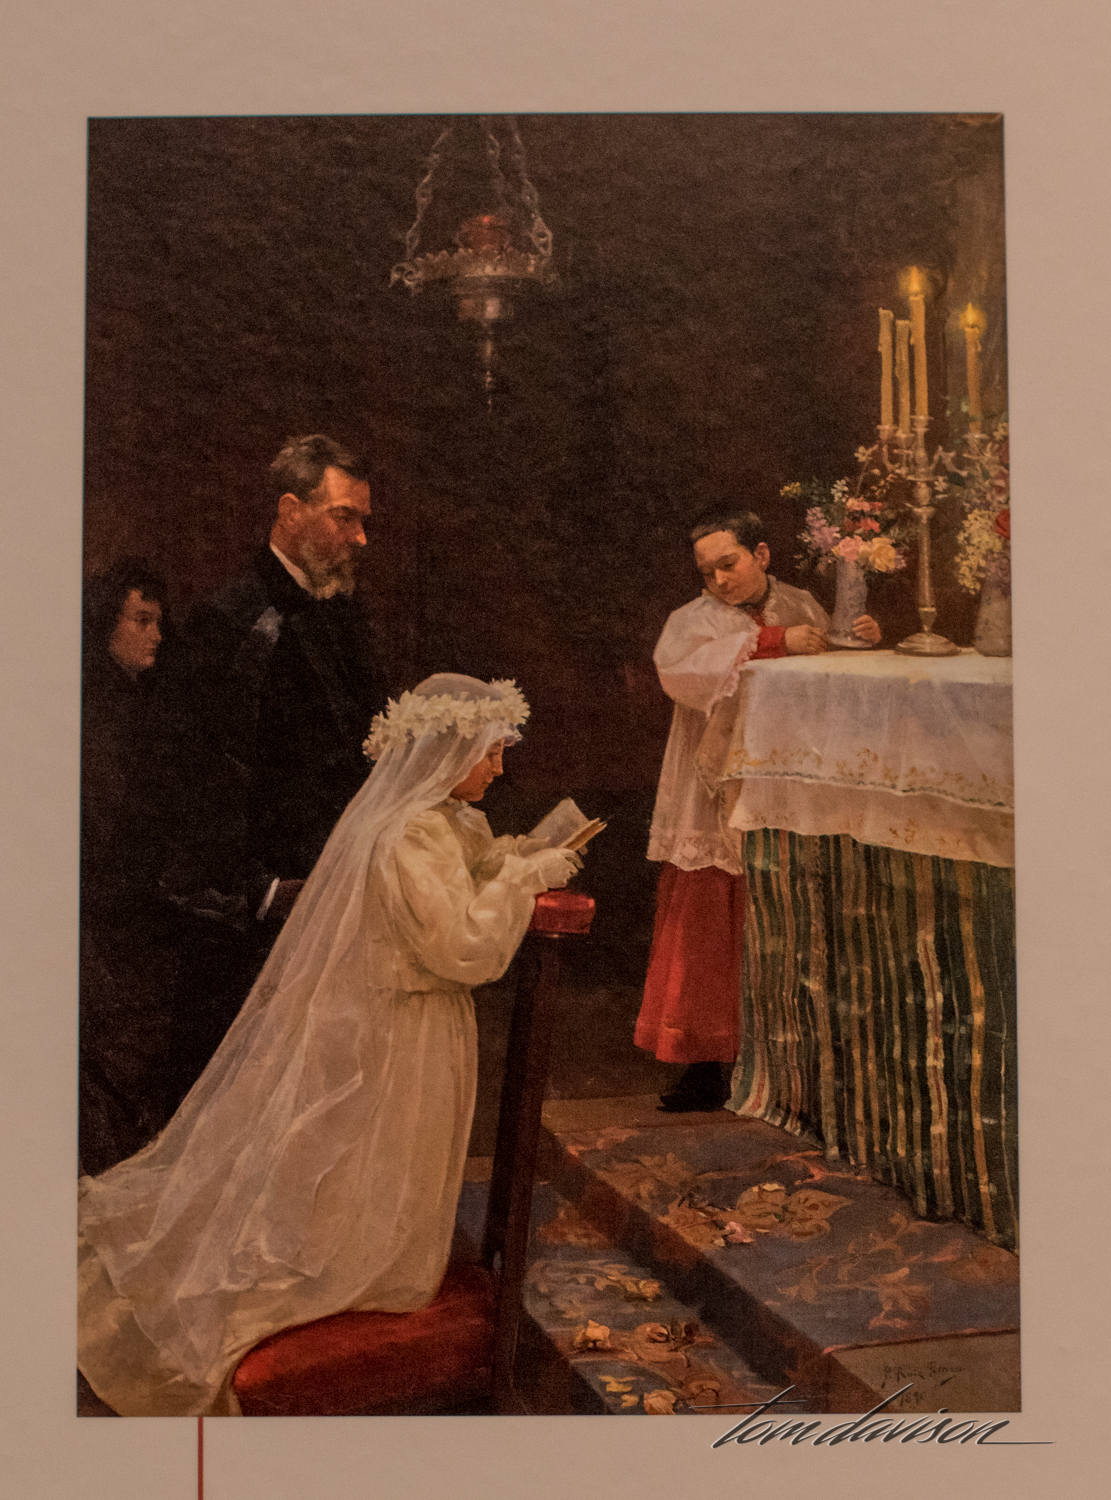 First Communion,   Oil on canvas, 1896.  This is Picasso's first significant oil painting.